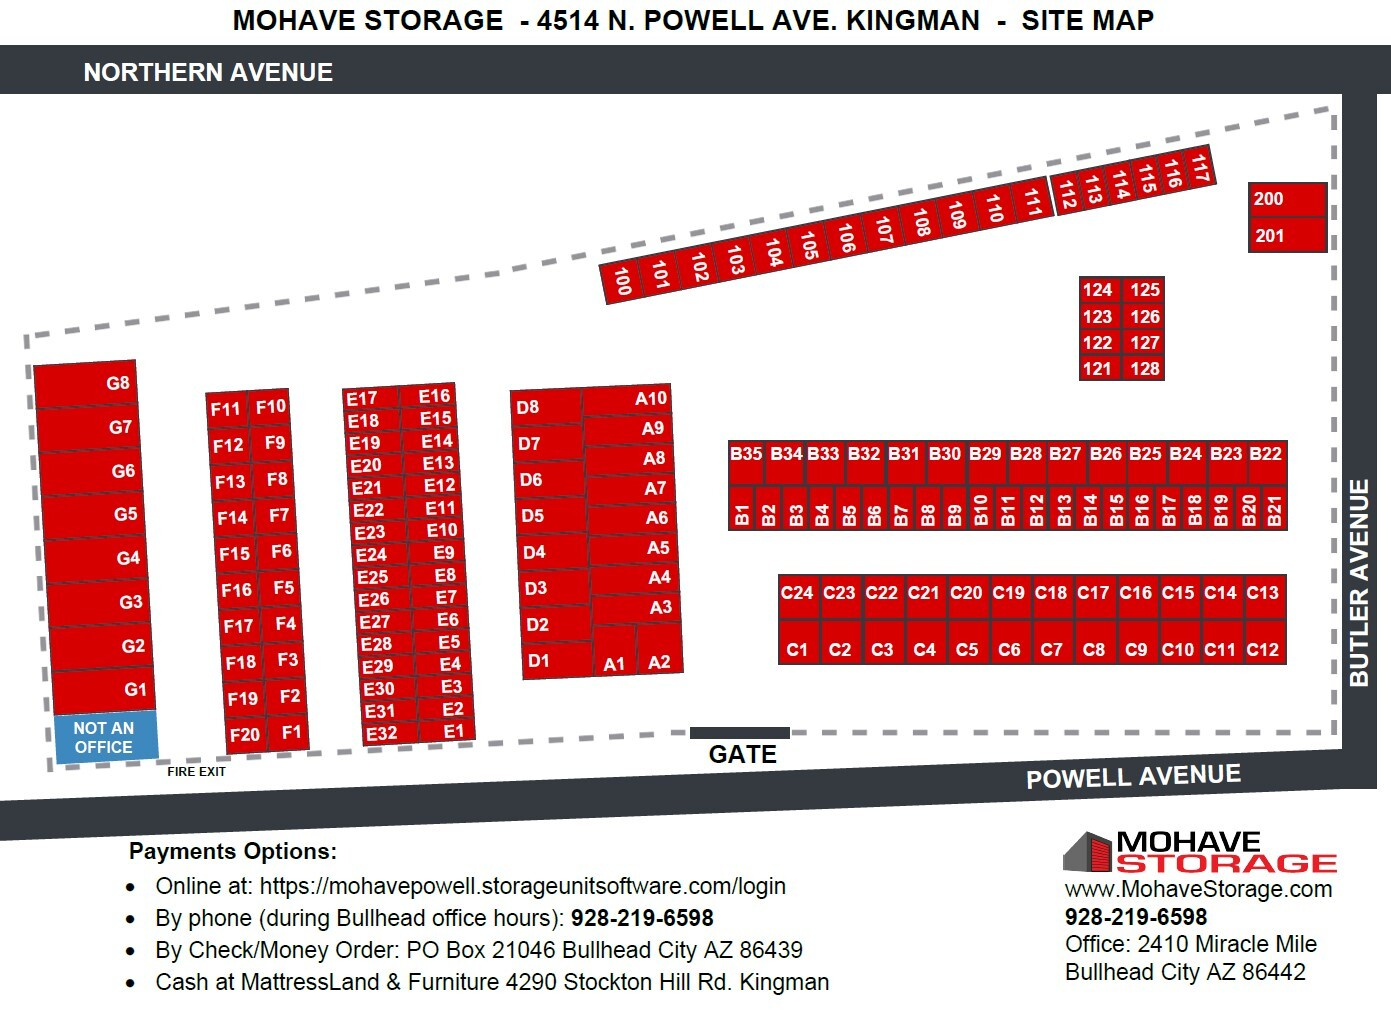 Site Map 4514 N. Powell Ave Kingman Site Map Prospective Tenants Mohave Storage Payment Options